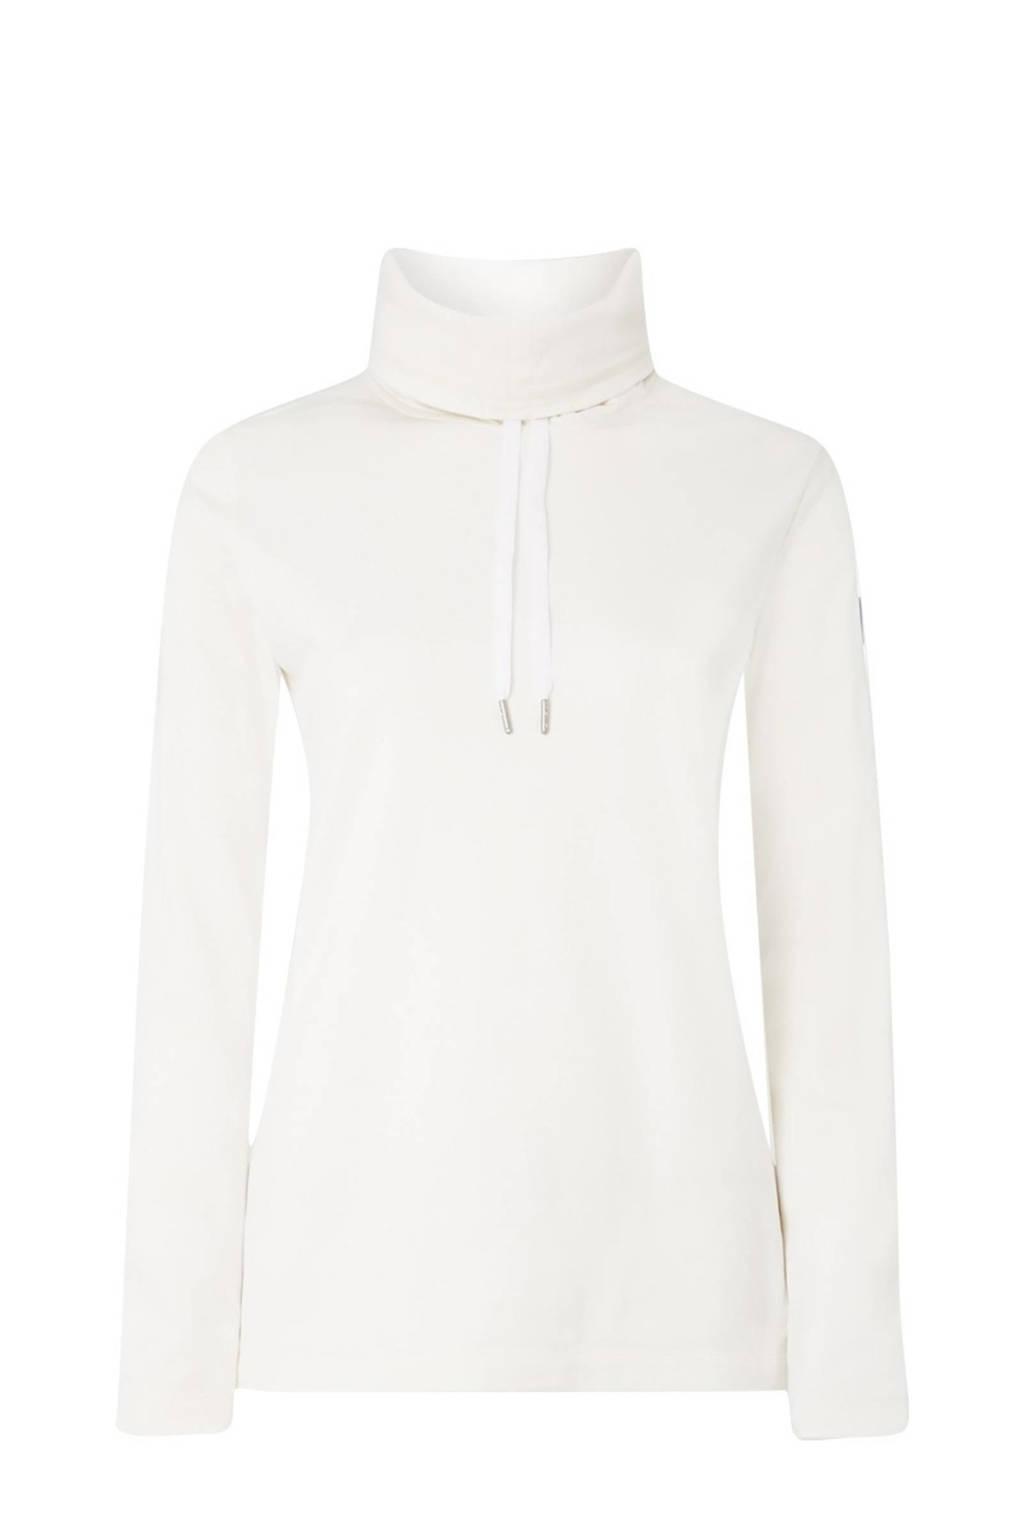 O'Neill skipully Clime Halfzip wit, Wit